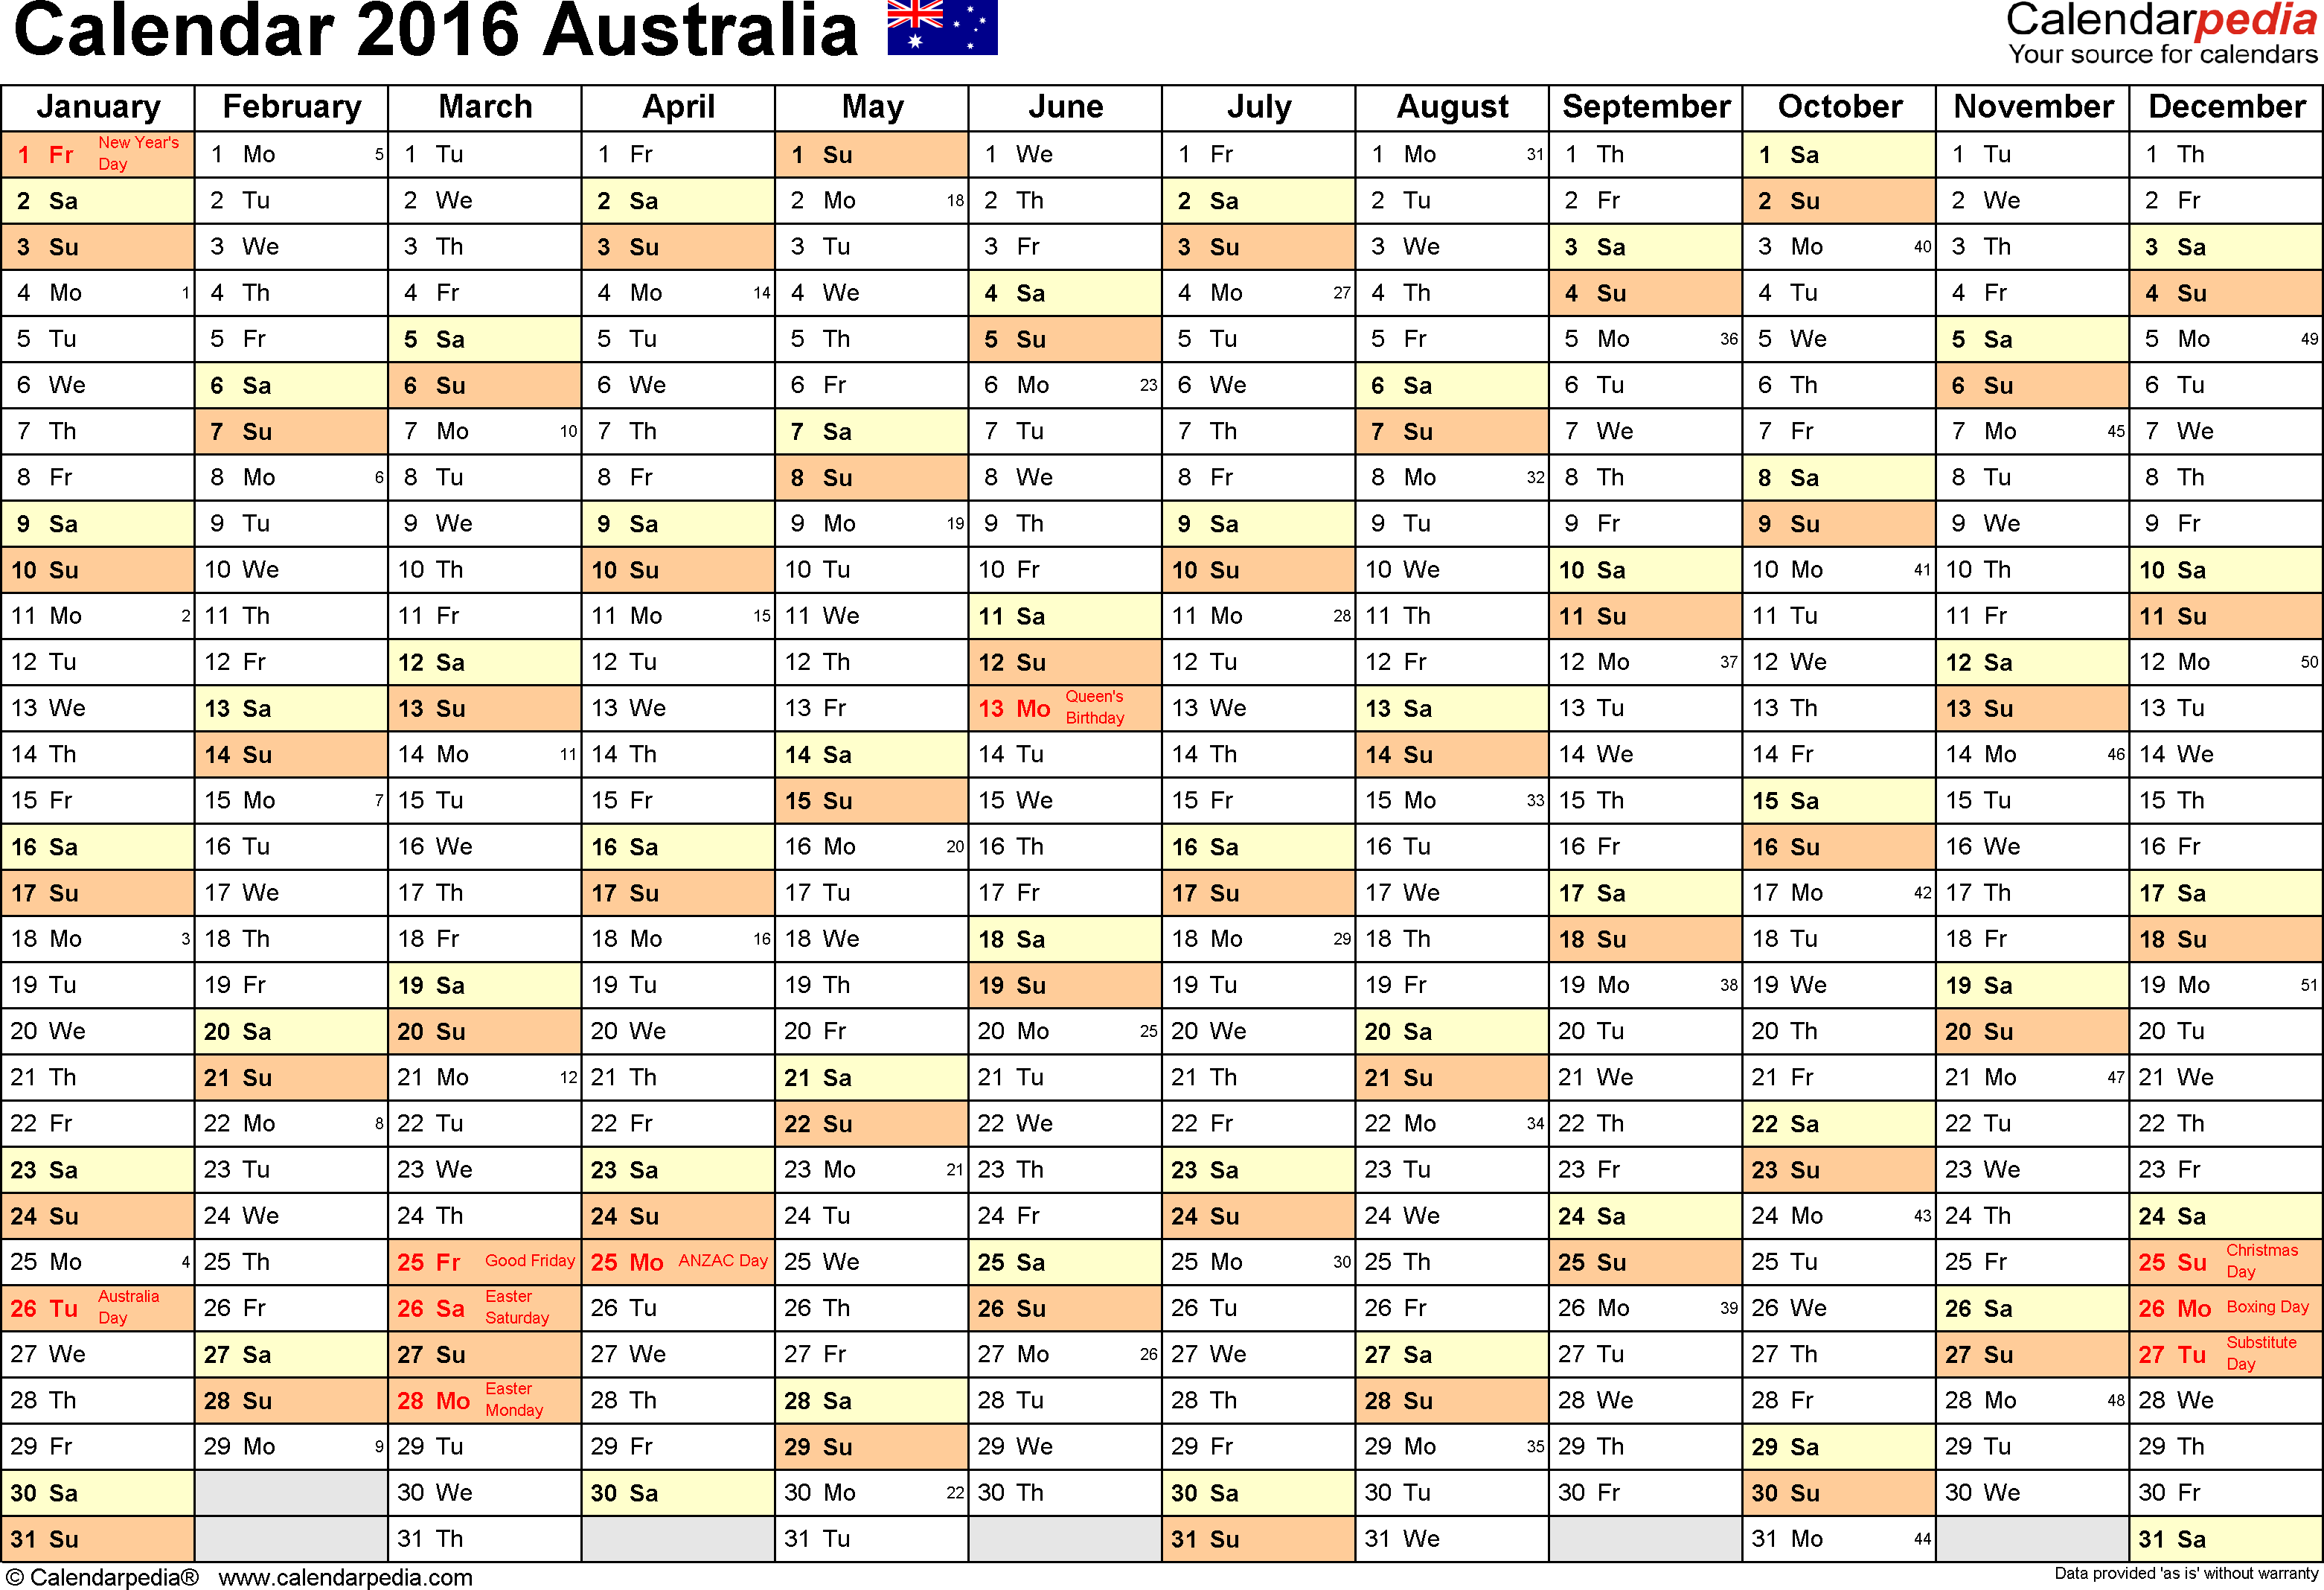 Template 2: 2016 Calendar Australia for Word, months horizontally, 1 page, landscape orientation